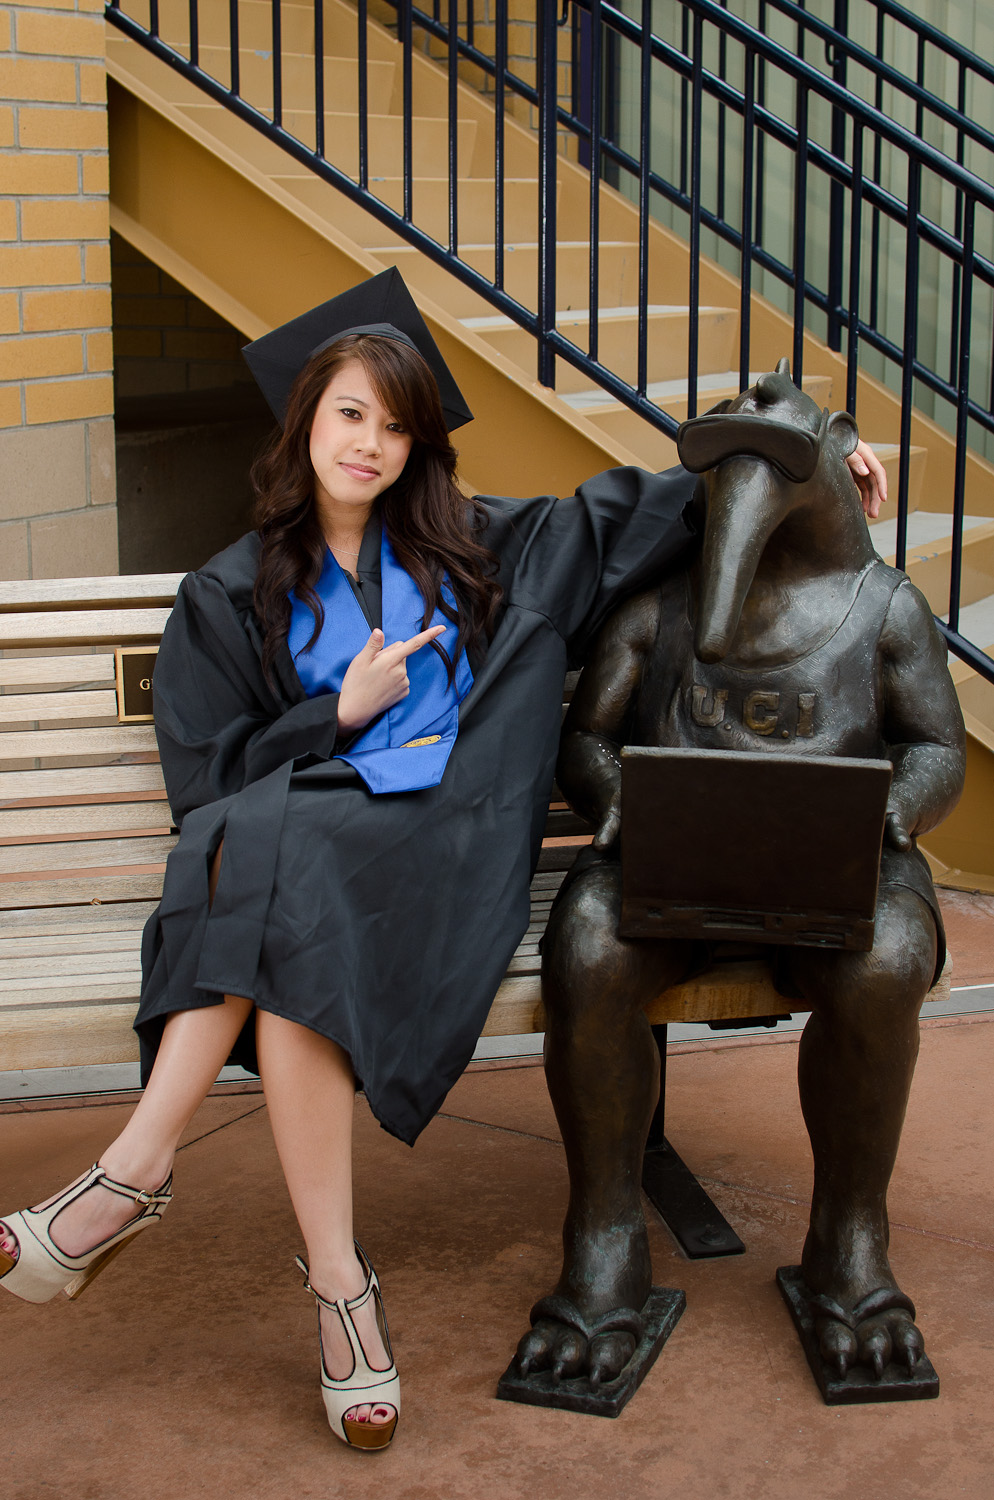 Bryan Miraflor Photography-Graduation Photoshoot-0026.jpg